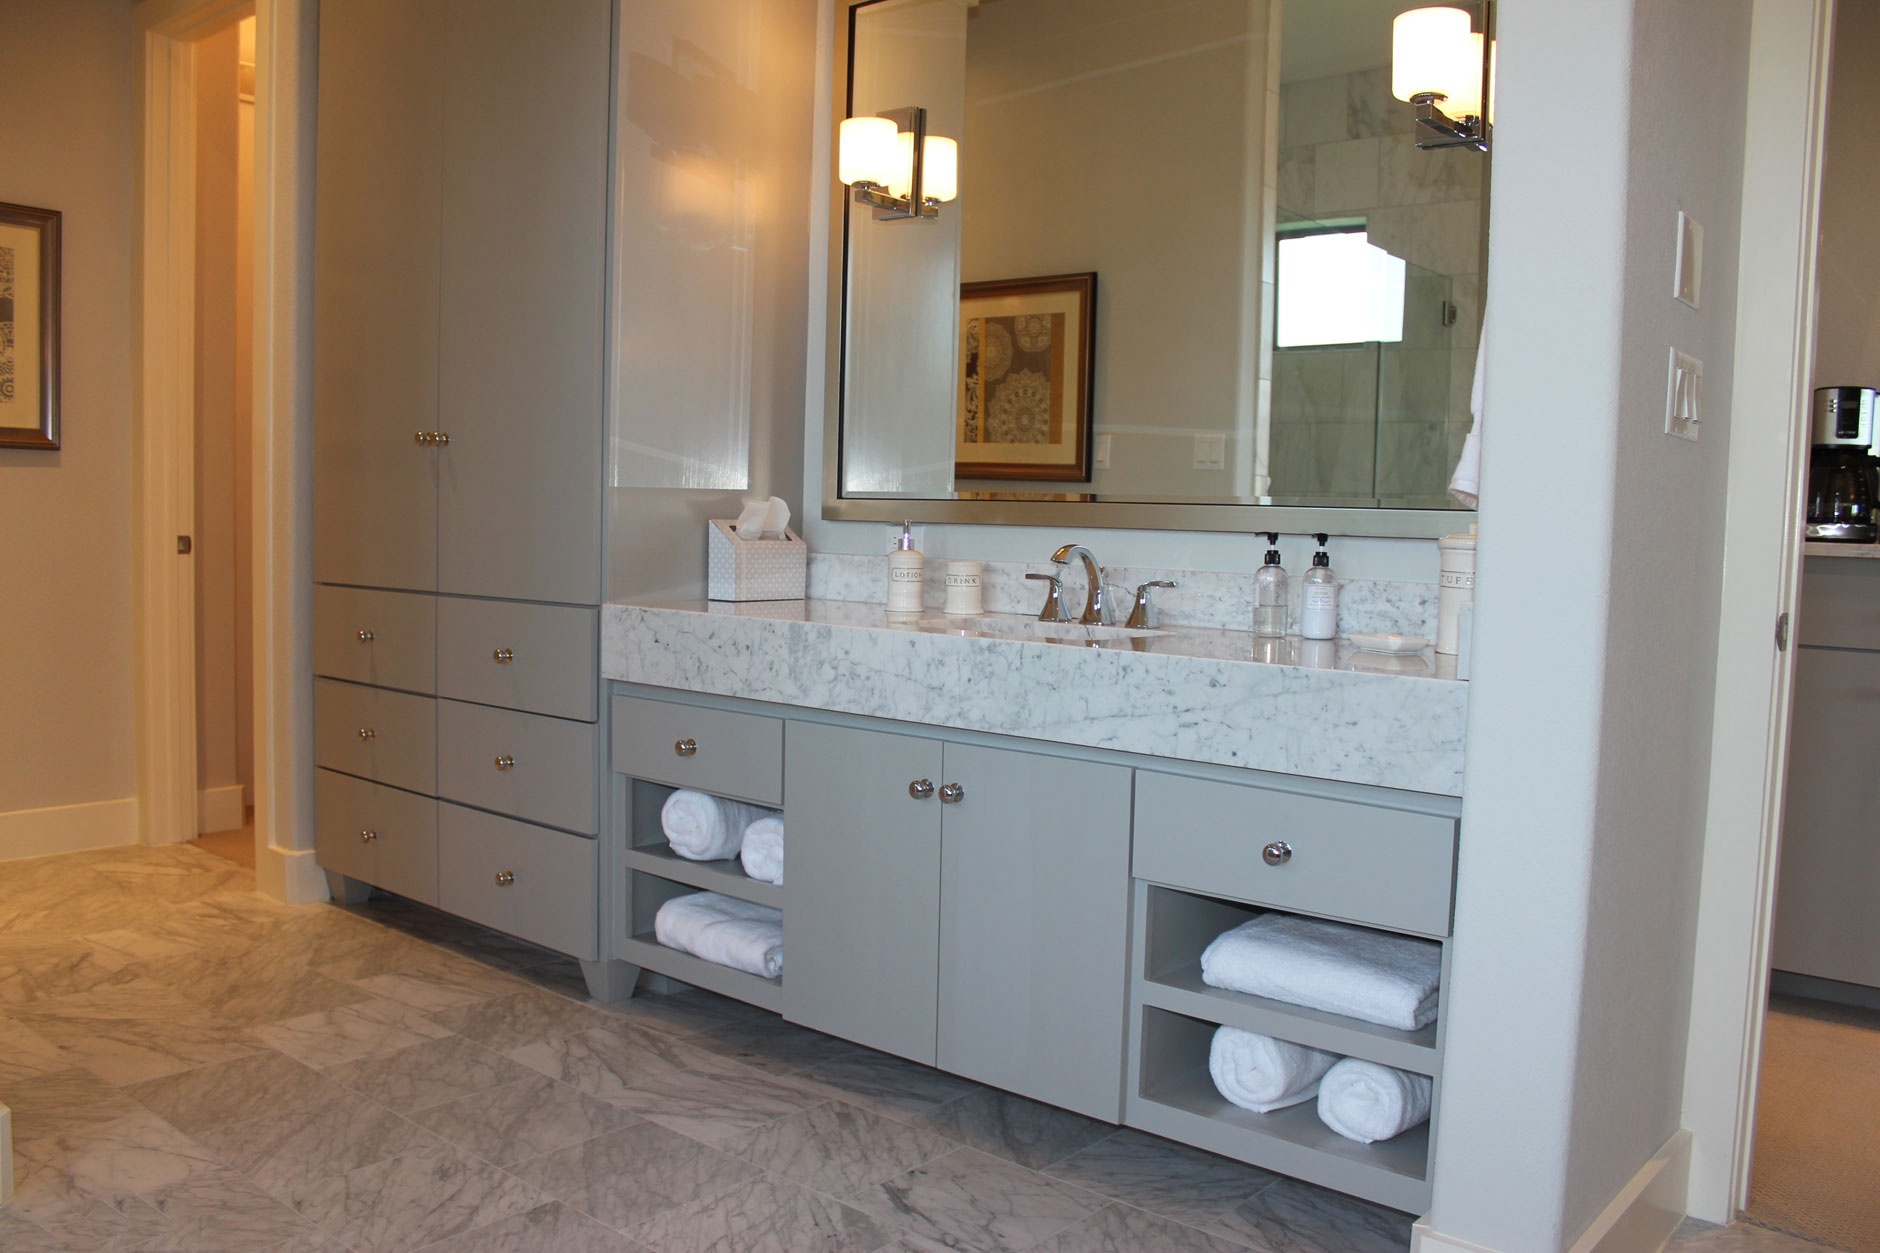 modern master bath cabinets in gray with SoCo doors and tall towel and linen storage